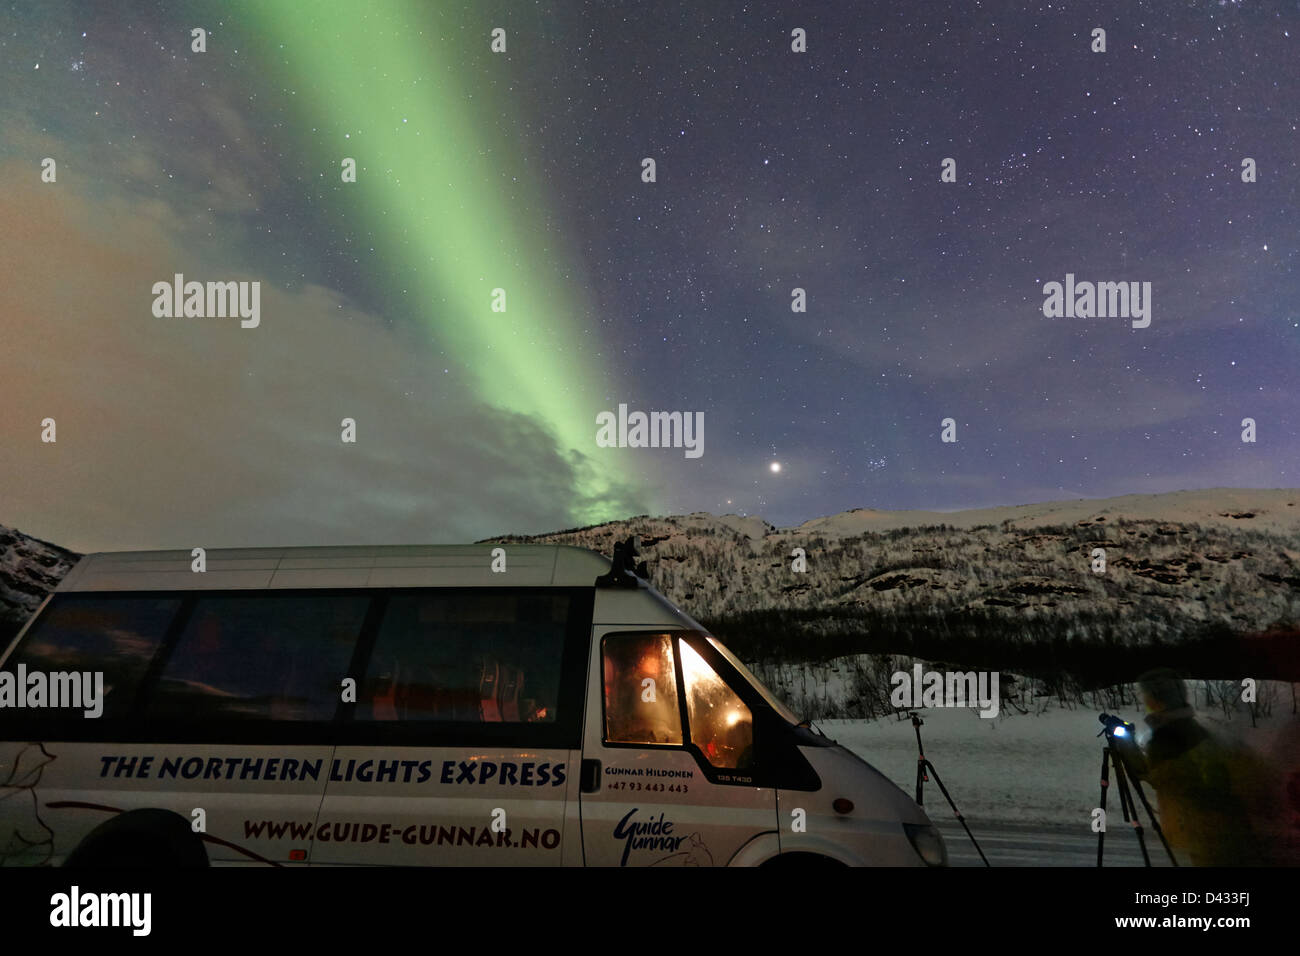 northern lights aurora borealis guided tour vehicle near tromso in northern norway europe - Stock Image